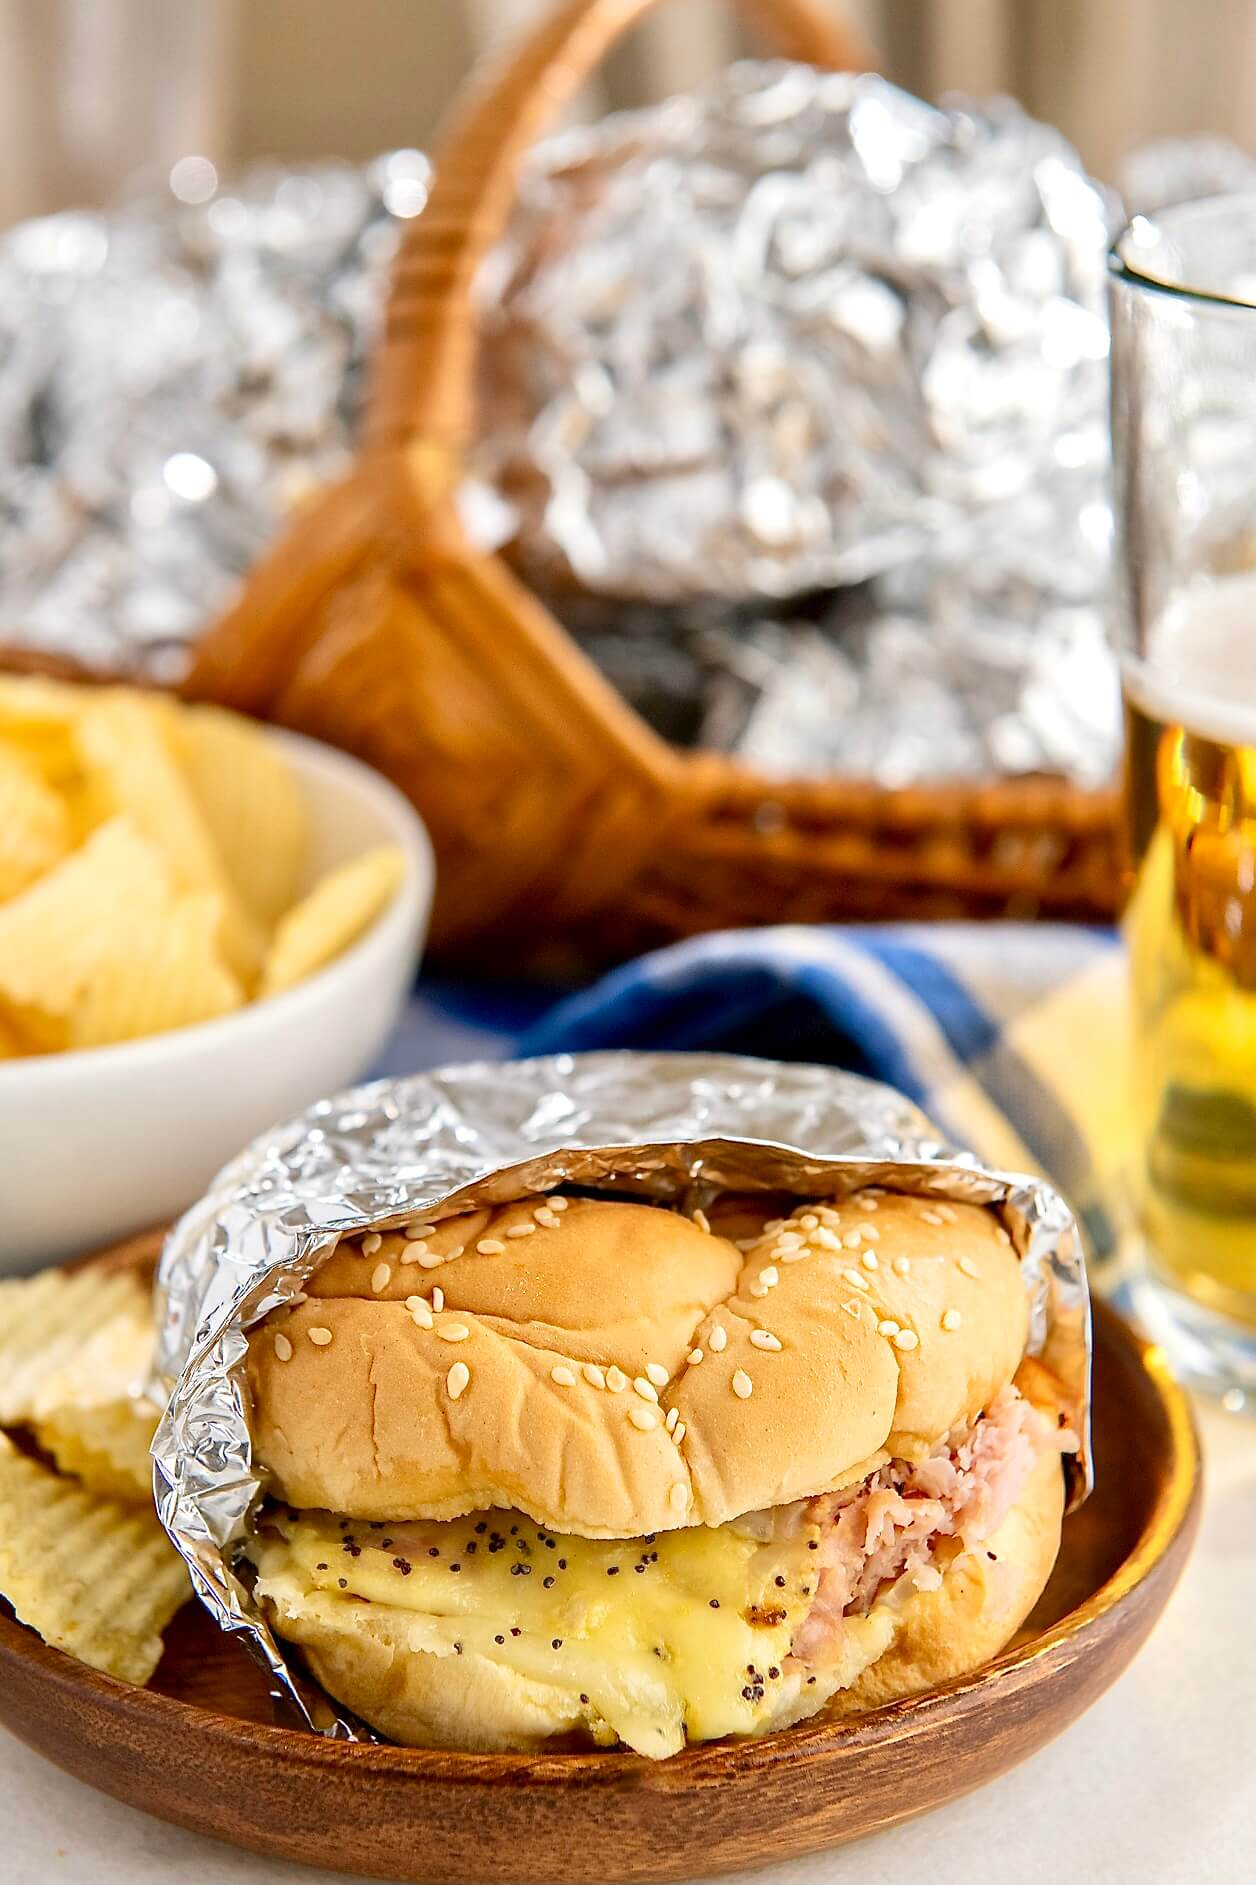 The classic ham sandwich is redefined with two kinds of cheese, a flavorful spread, and a quick trip to the oven. These toasty bunwiches are easy to make ahead and as well suited to casual entertaining as they are to a quick weeknight meal with a side of soup!